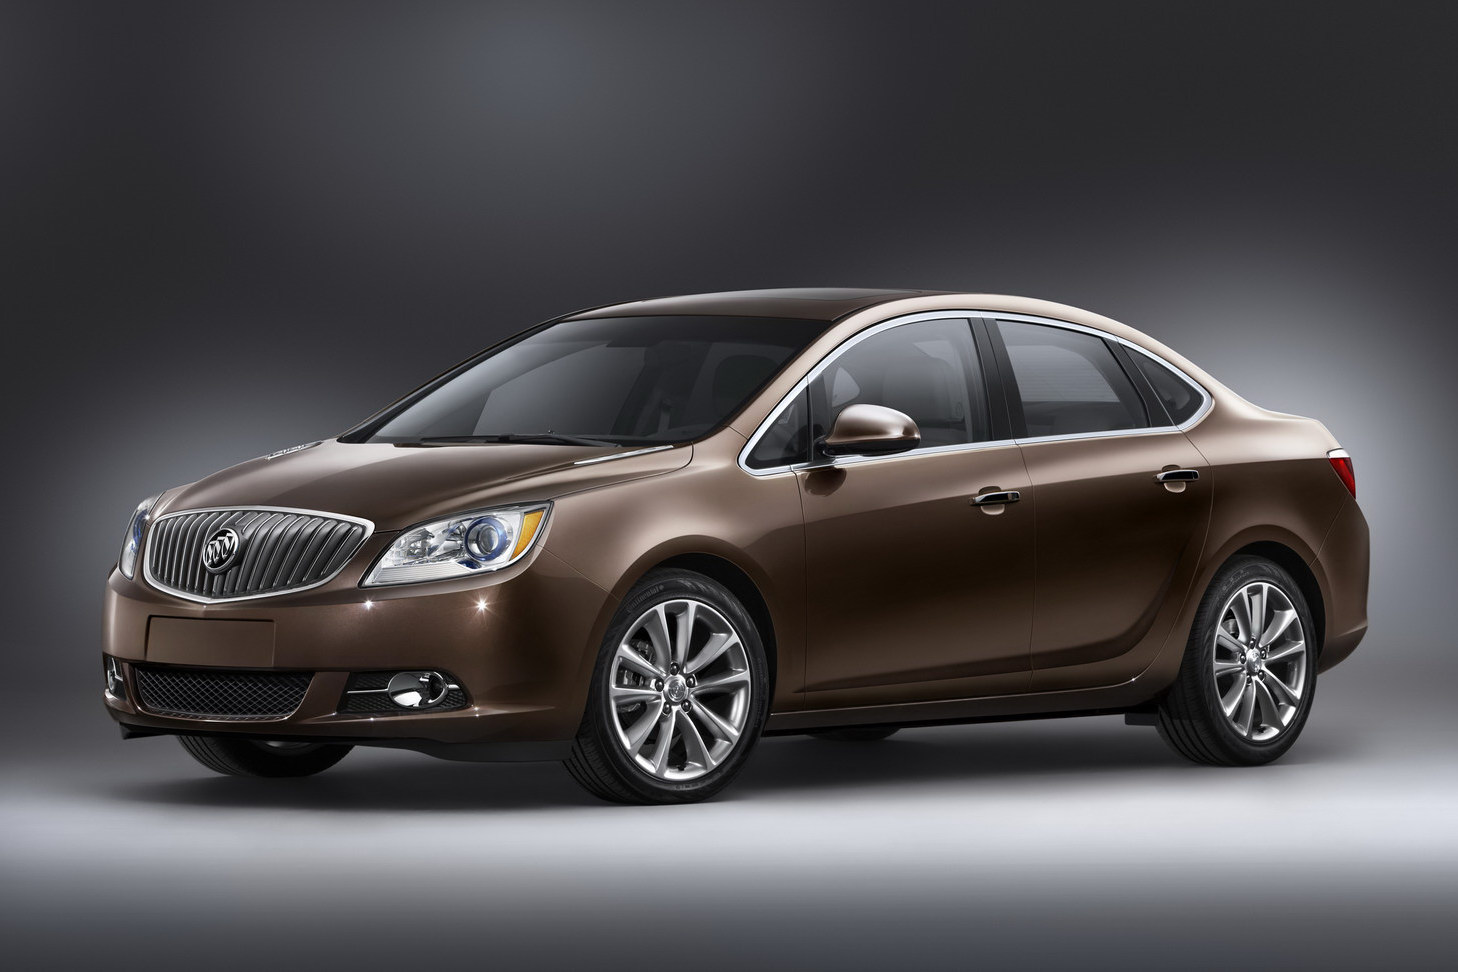 2012 Buick Verano 2 2012 Buick Verano available at $23,470 and $26,850